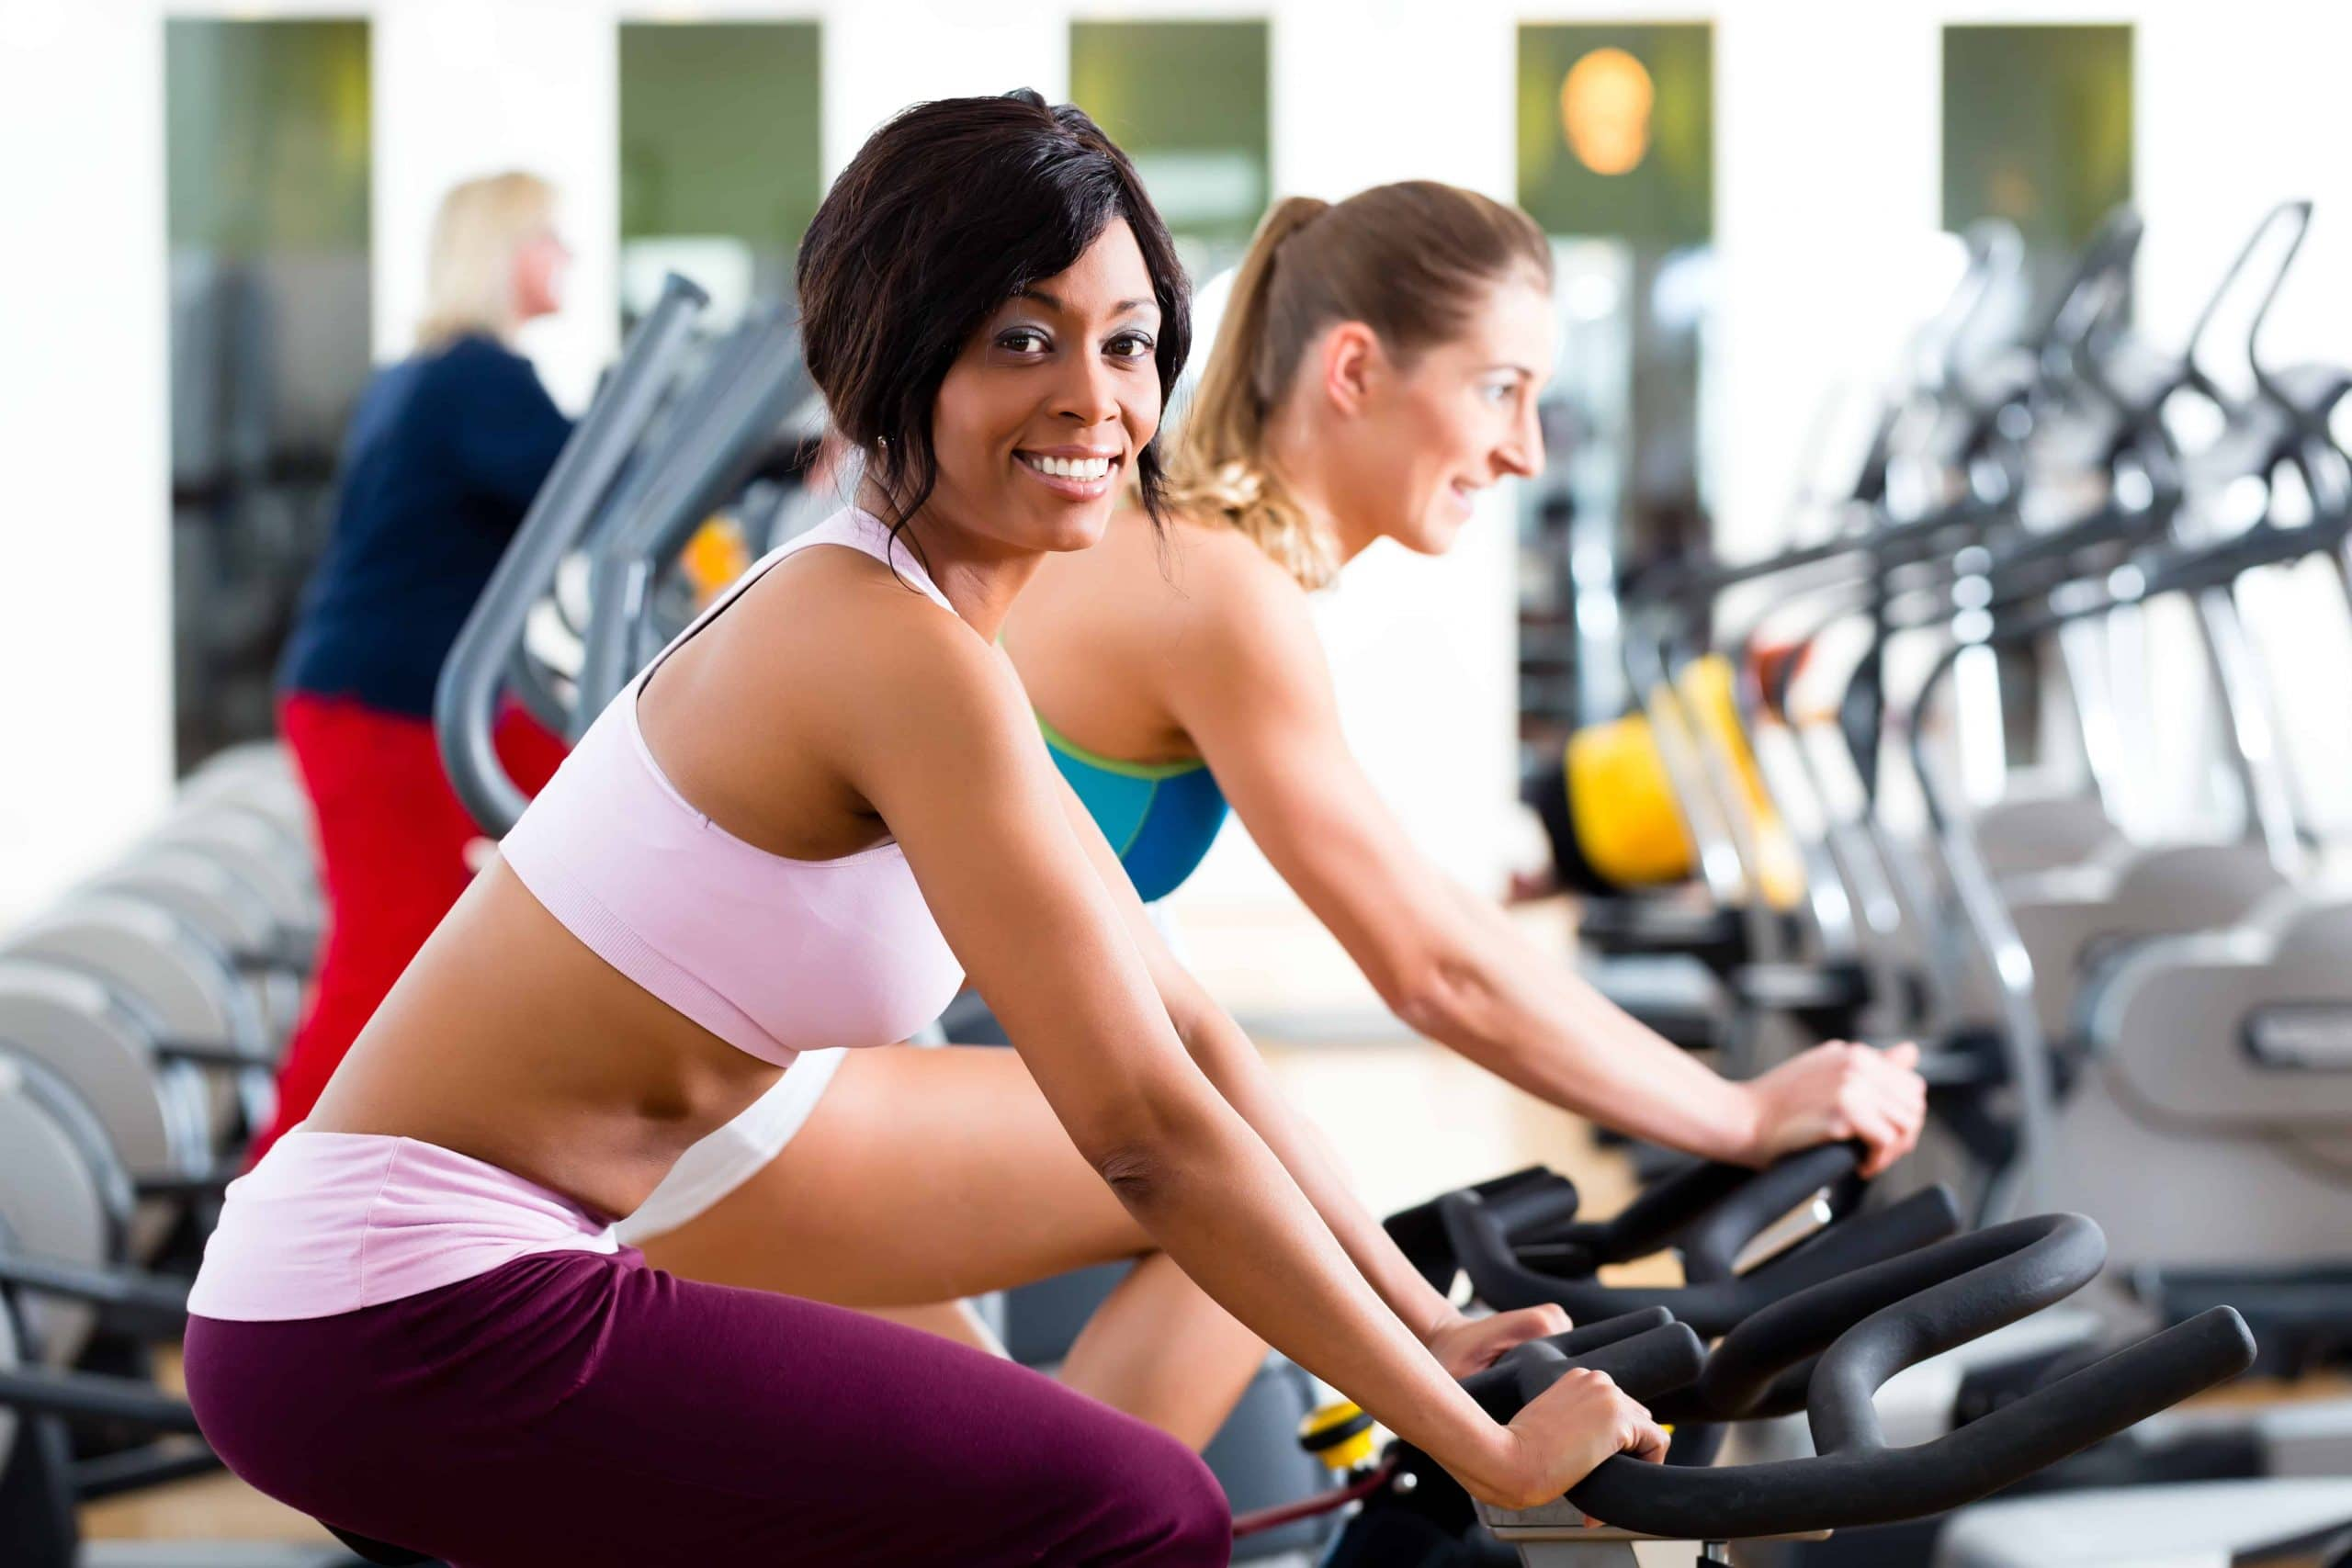 How to Get In and Out of the Gym Quickly 5